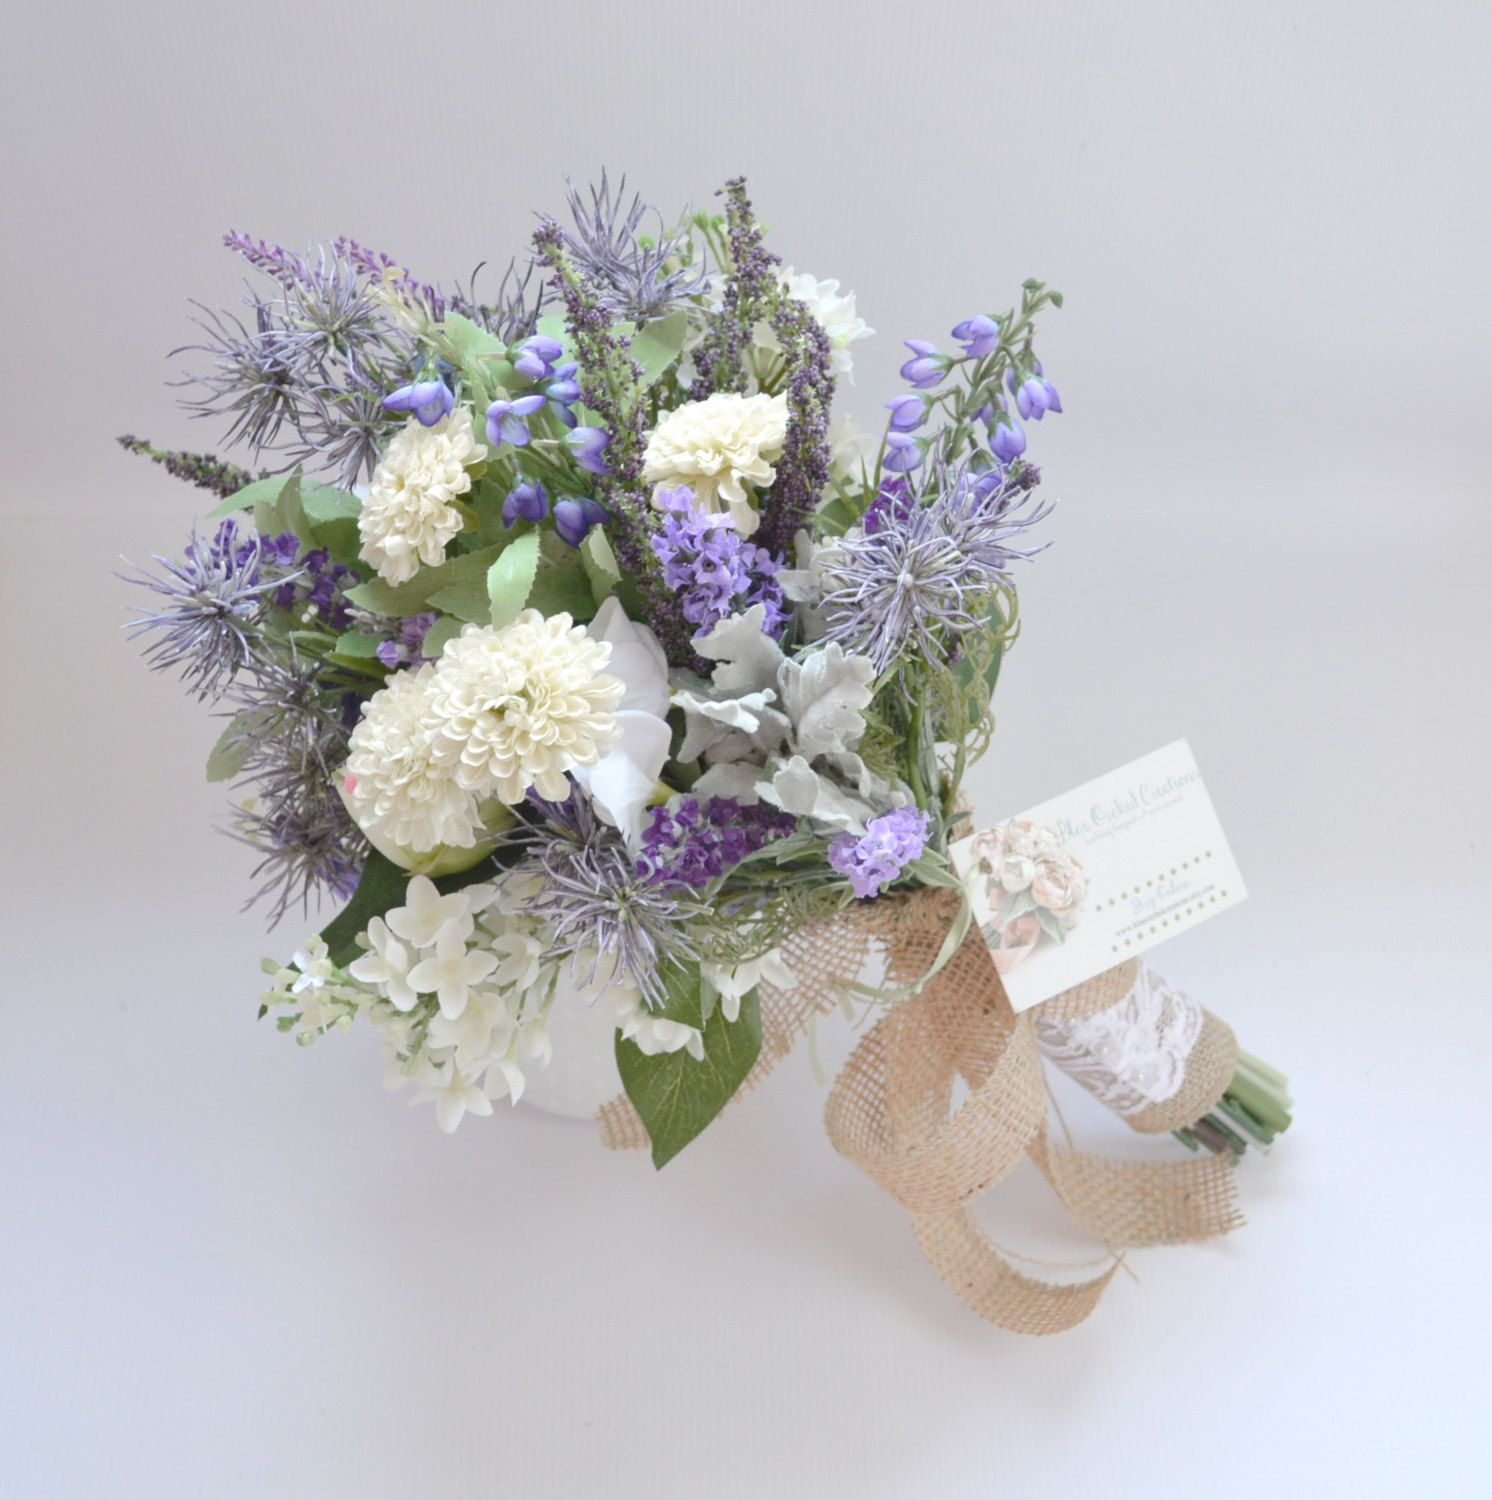 Babys breath and lavender wildflower bouquet google search my babys breath and lavender wildflower bouquet google search izmirmasajfo